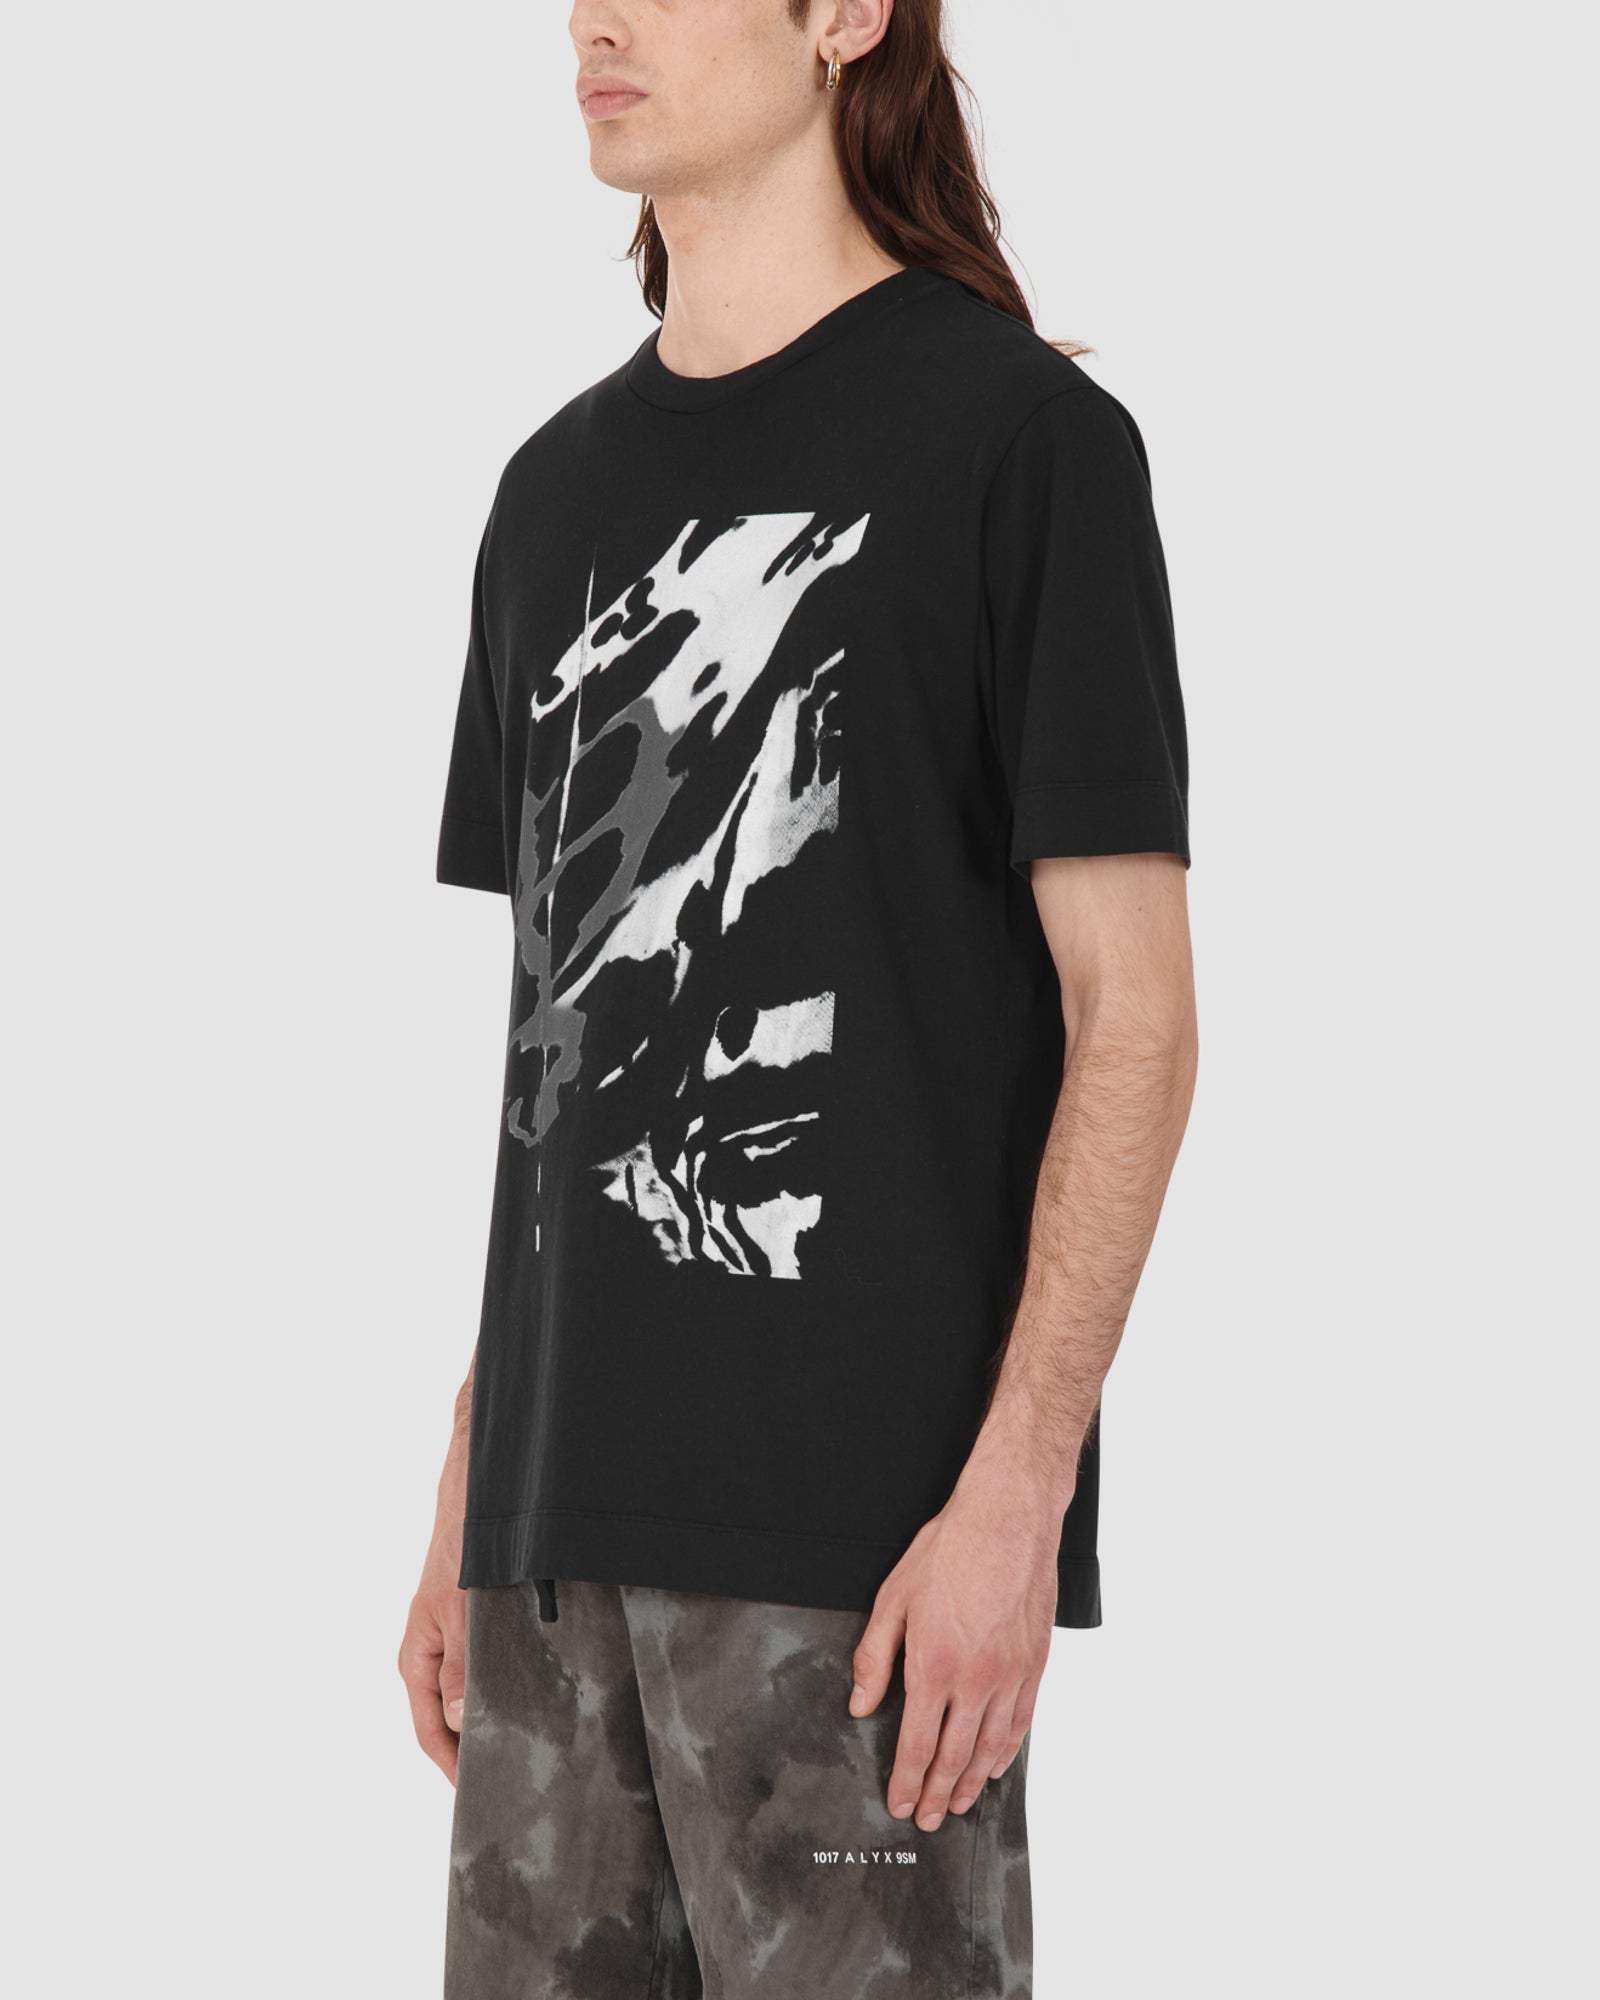 1017 ALYX 9SM | SS TEE W SERIGRAPHIC WING | T-Shirt | BLACK, Google Shopping, Man, MEN, S20, S20 Drop II, T-Shirts